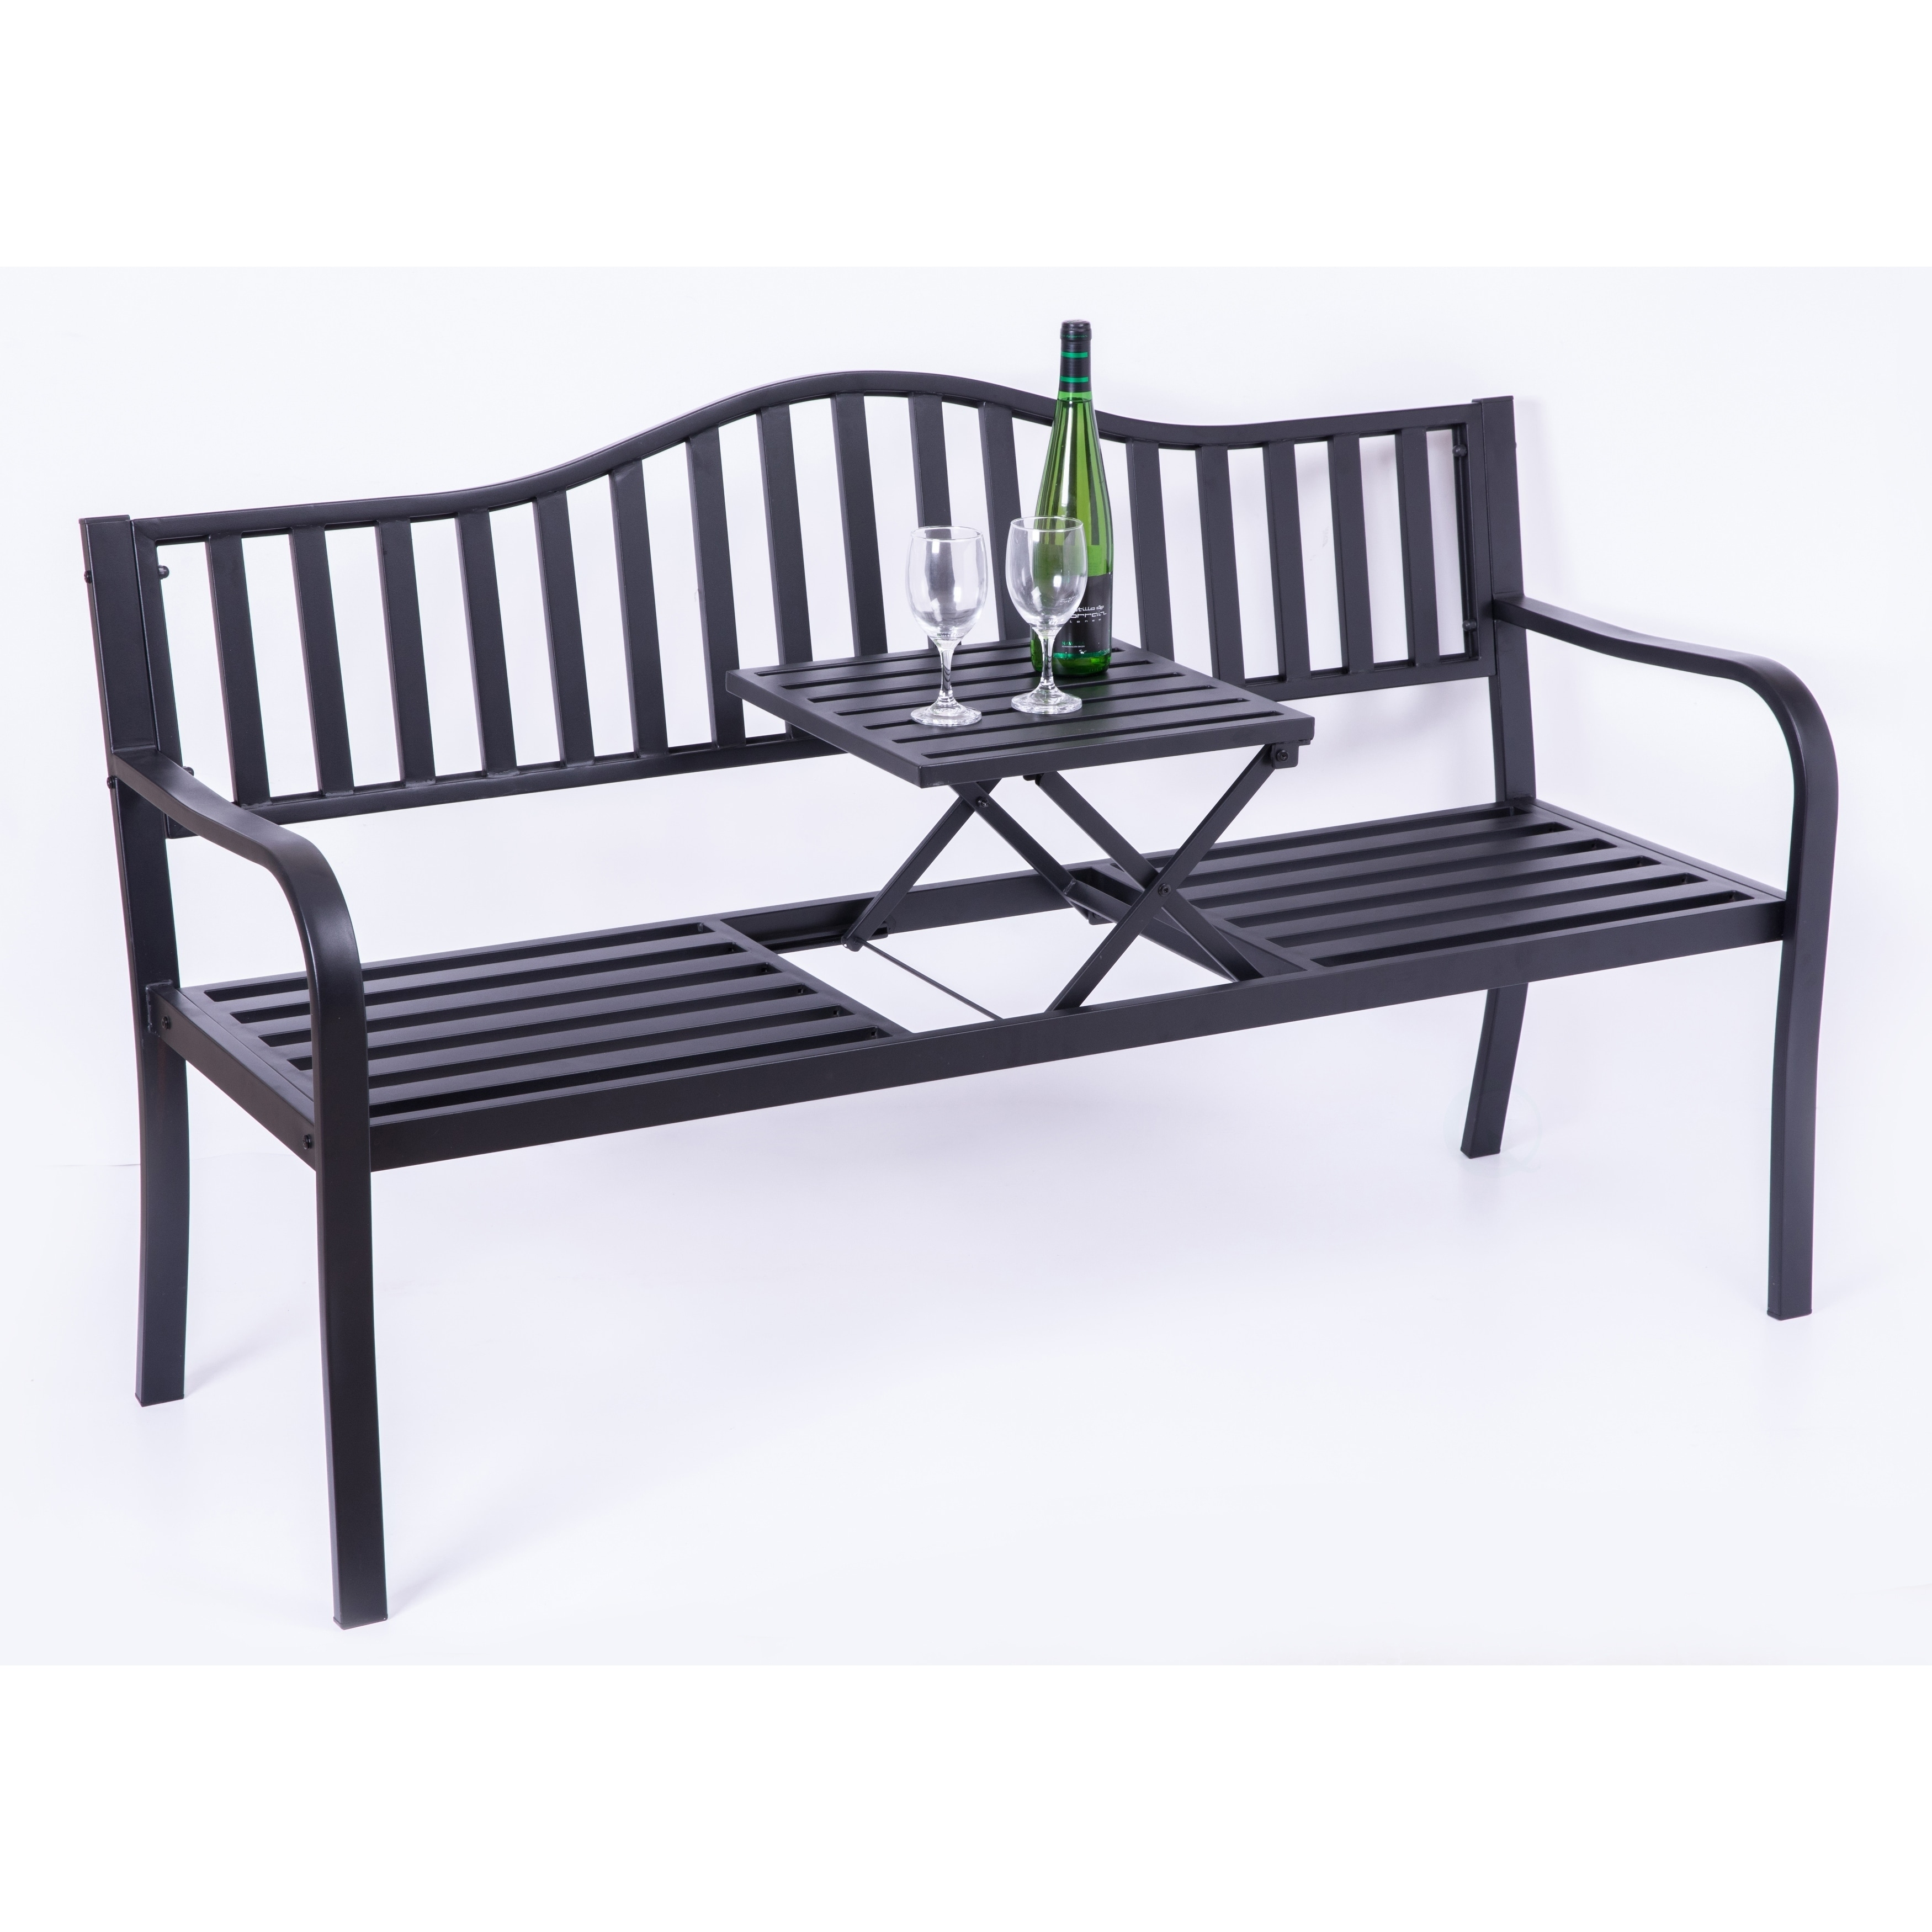 Picture of: Shop Black Friday Deals On Powder Coated Black Steel Patio Garden Park Bench With Middle Table Overstock 27479552